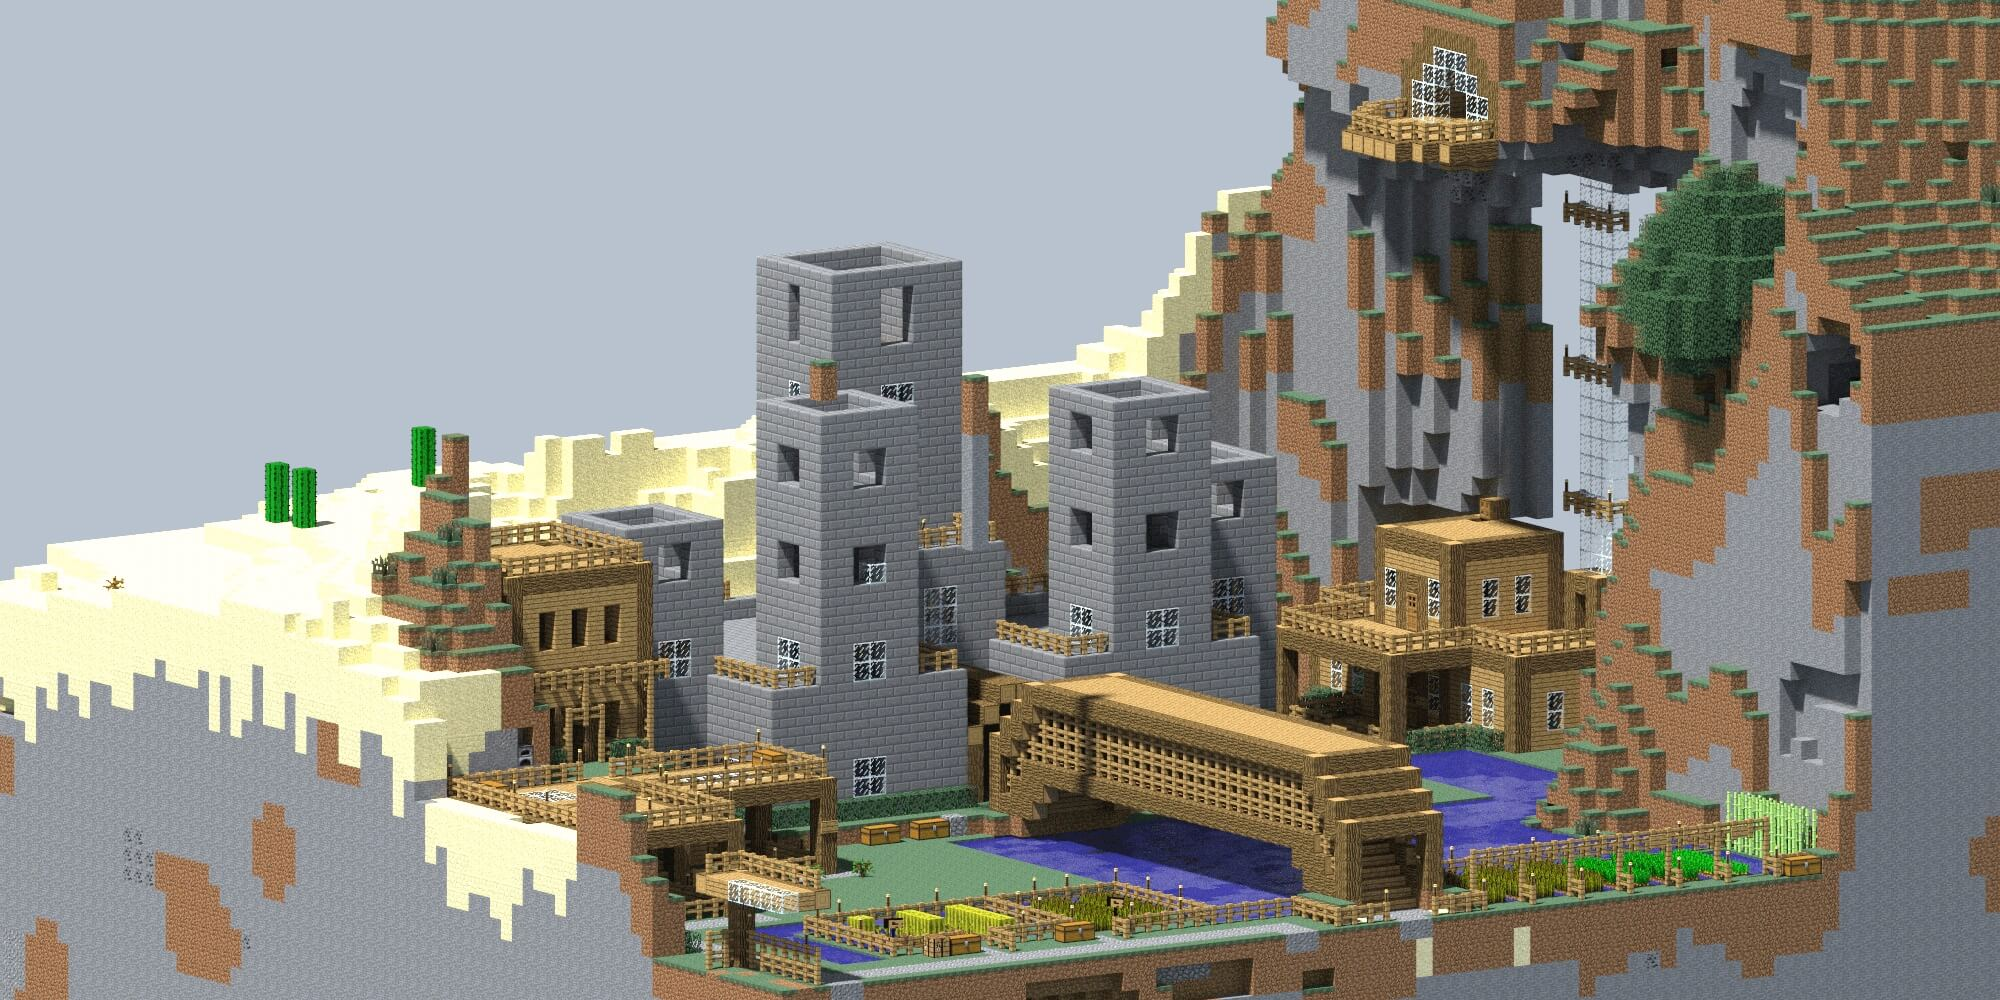 A render of a Minecraft castle.